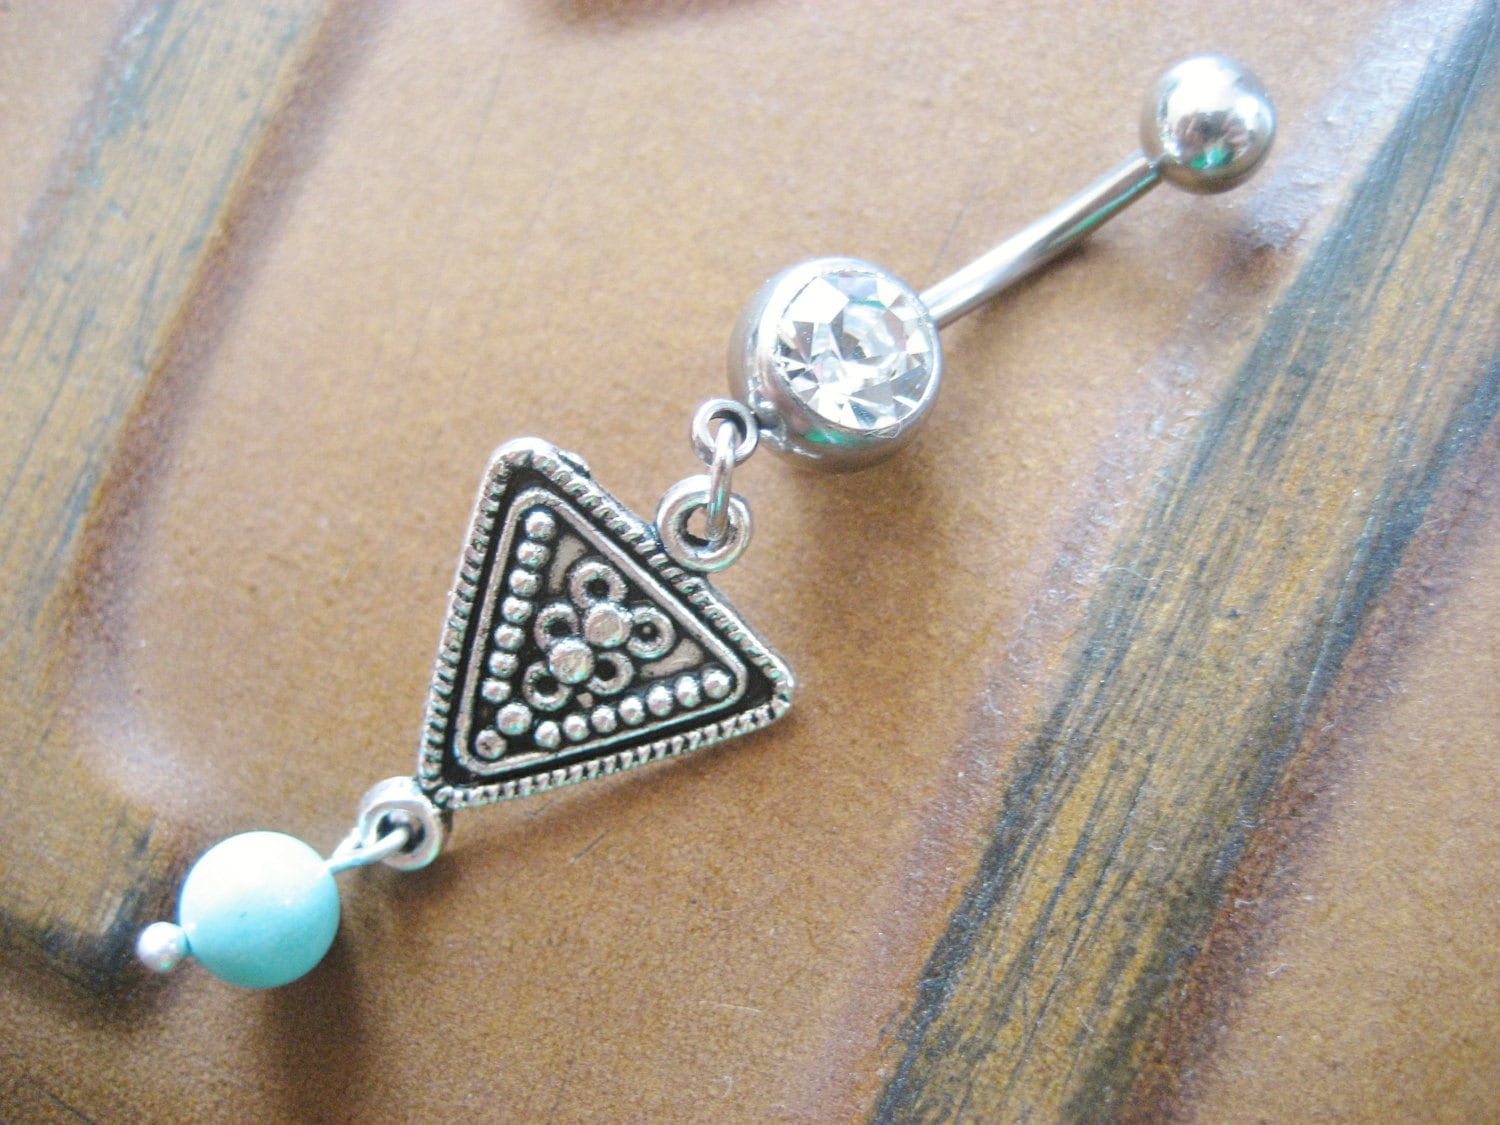 Belly Button Ring Jewelry Tribal Triangle Belly Button Jewelry Ring Piercing Turquoise Beaded Navel Bar Barbell Belly Button Ring Jewelry